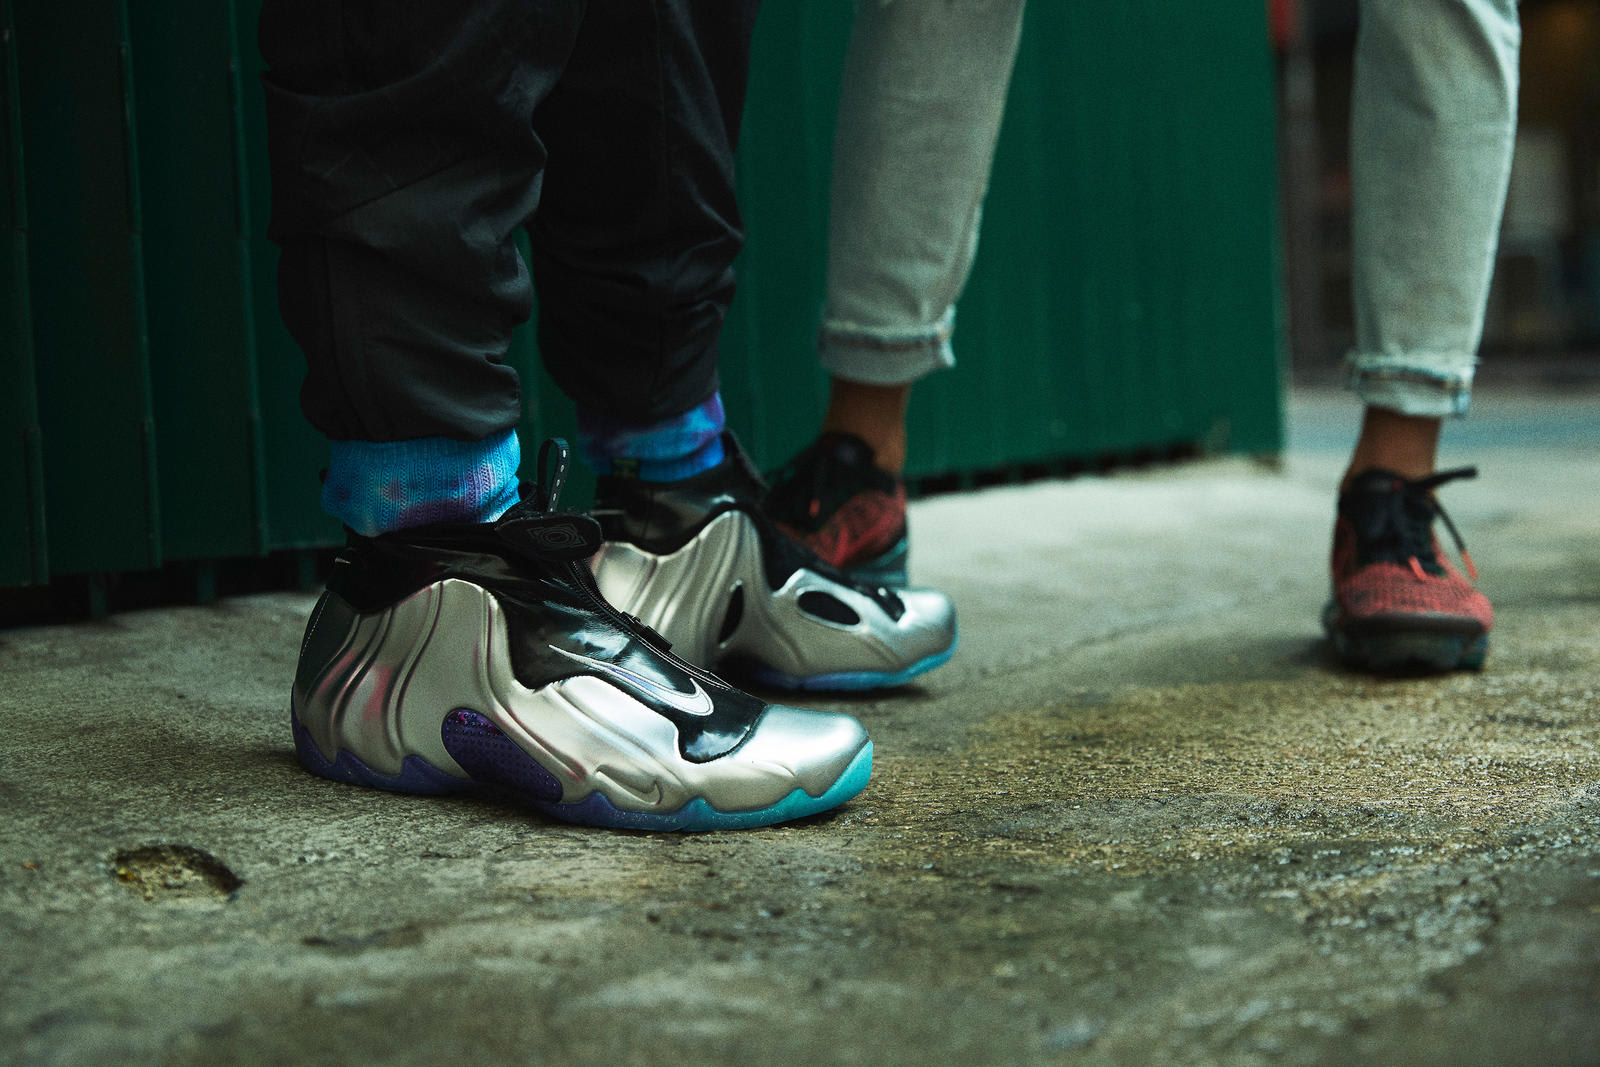 Nike China Hoop Dreams Air Flightposite